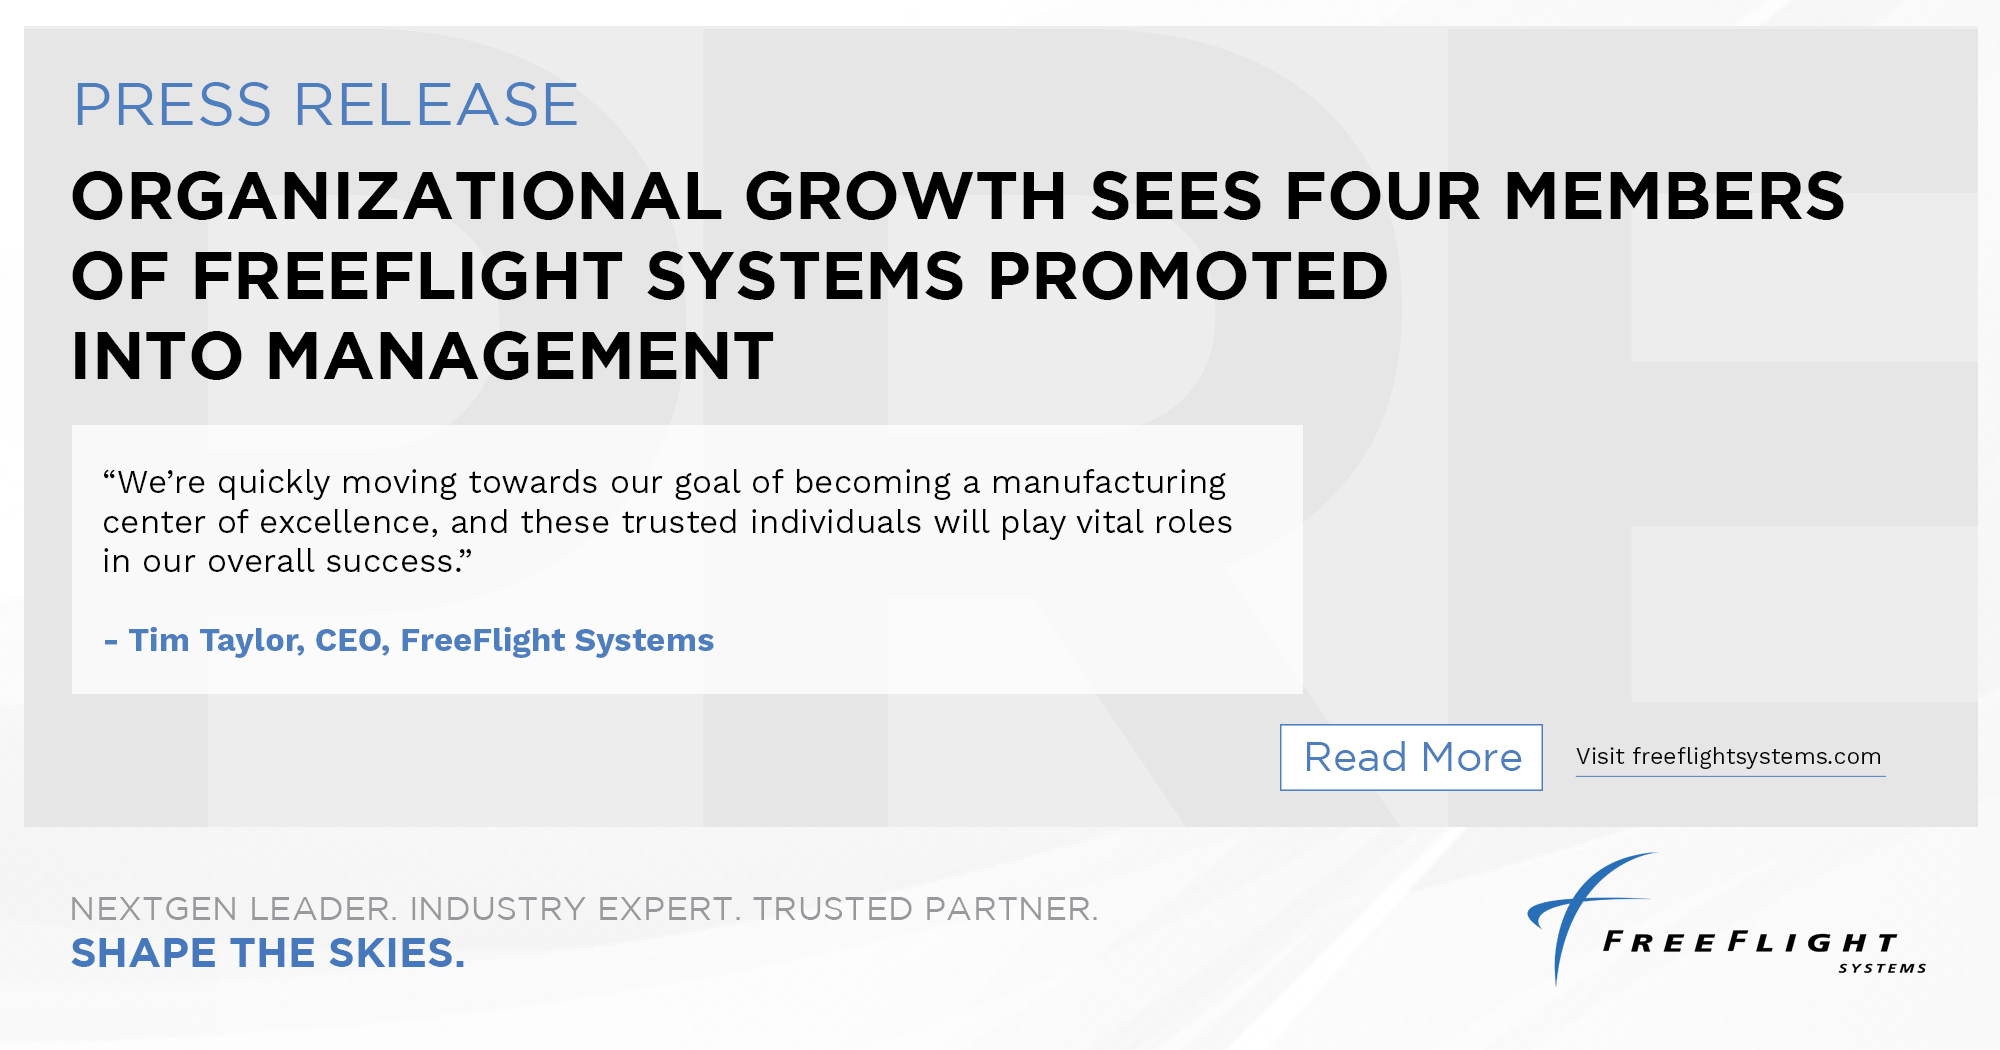 Organizational Growth Sees Four Members of FreeFlight Systems Promoted into Management